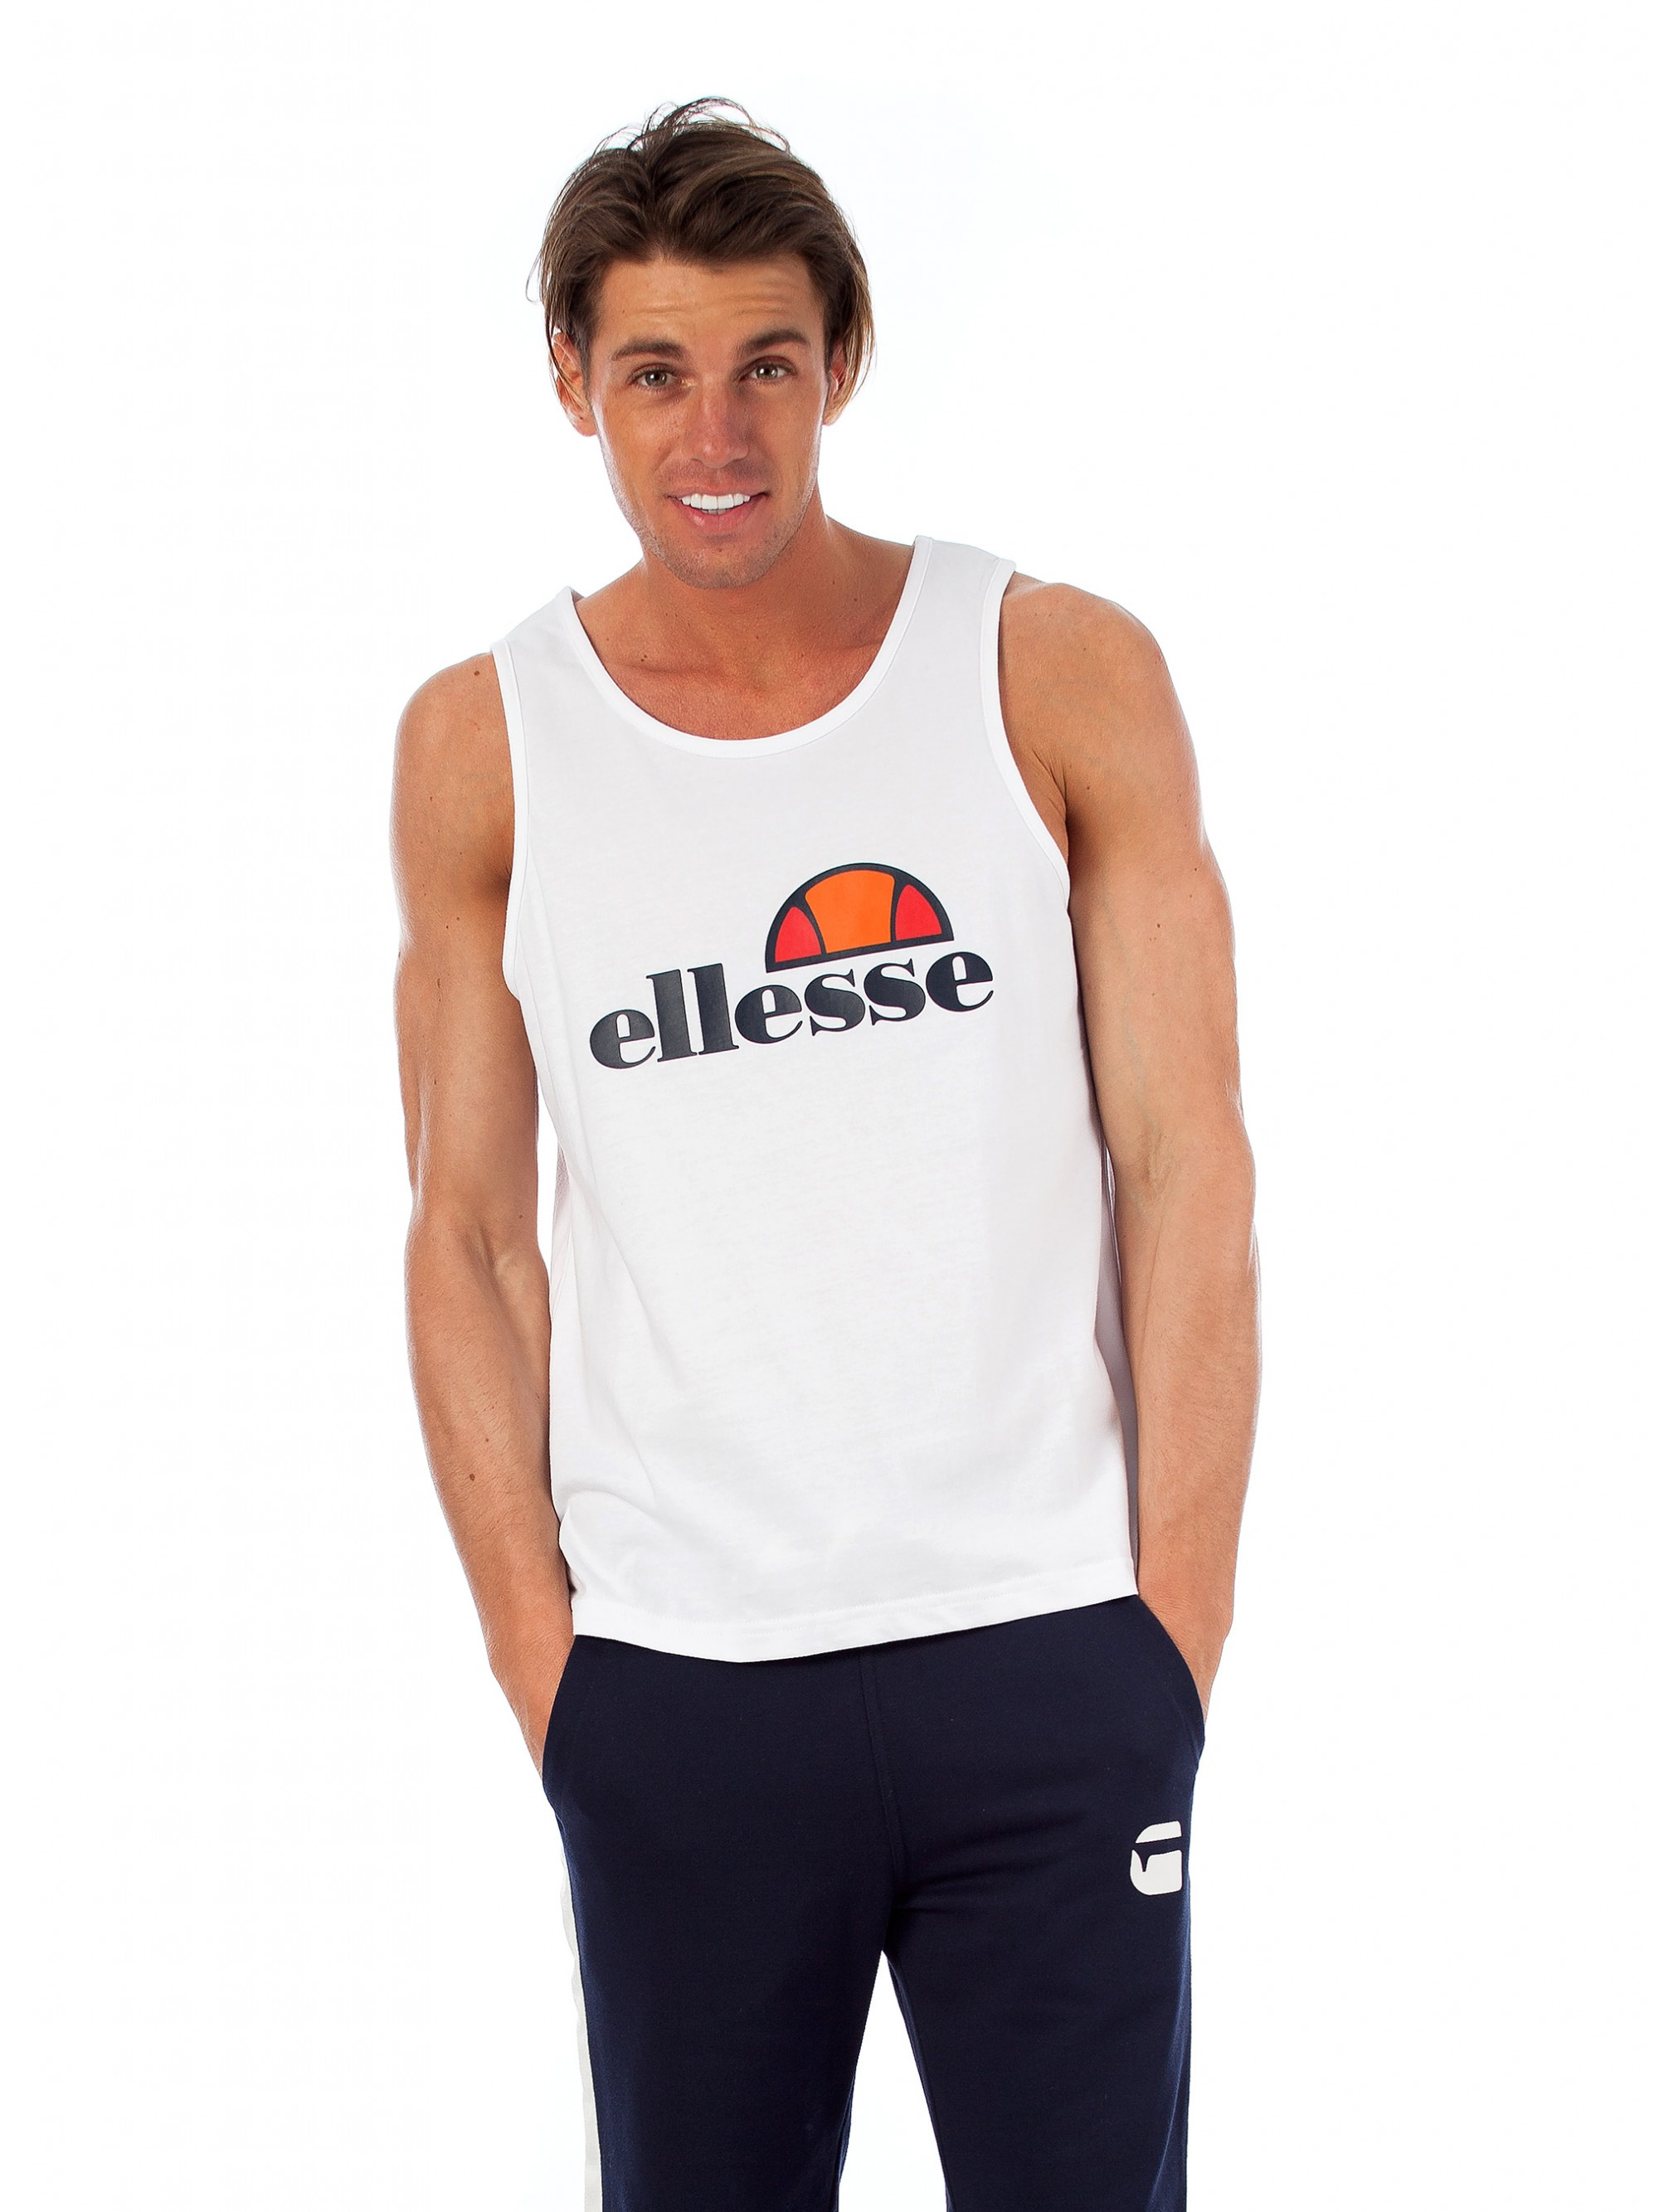 Ellesse Tank Top Trattini-White - T-Shirts - Blouses   Tops - Tops ... 830a5a9514